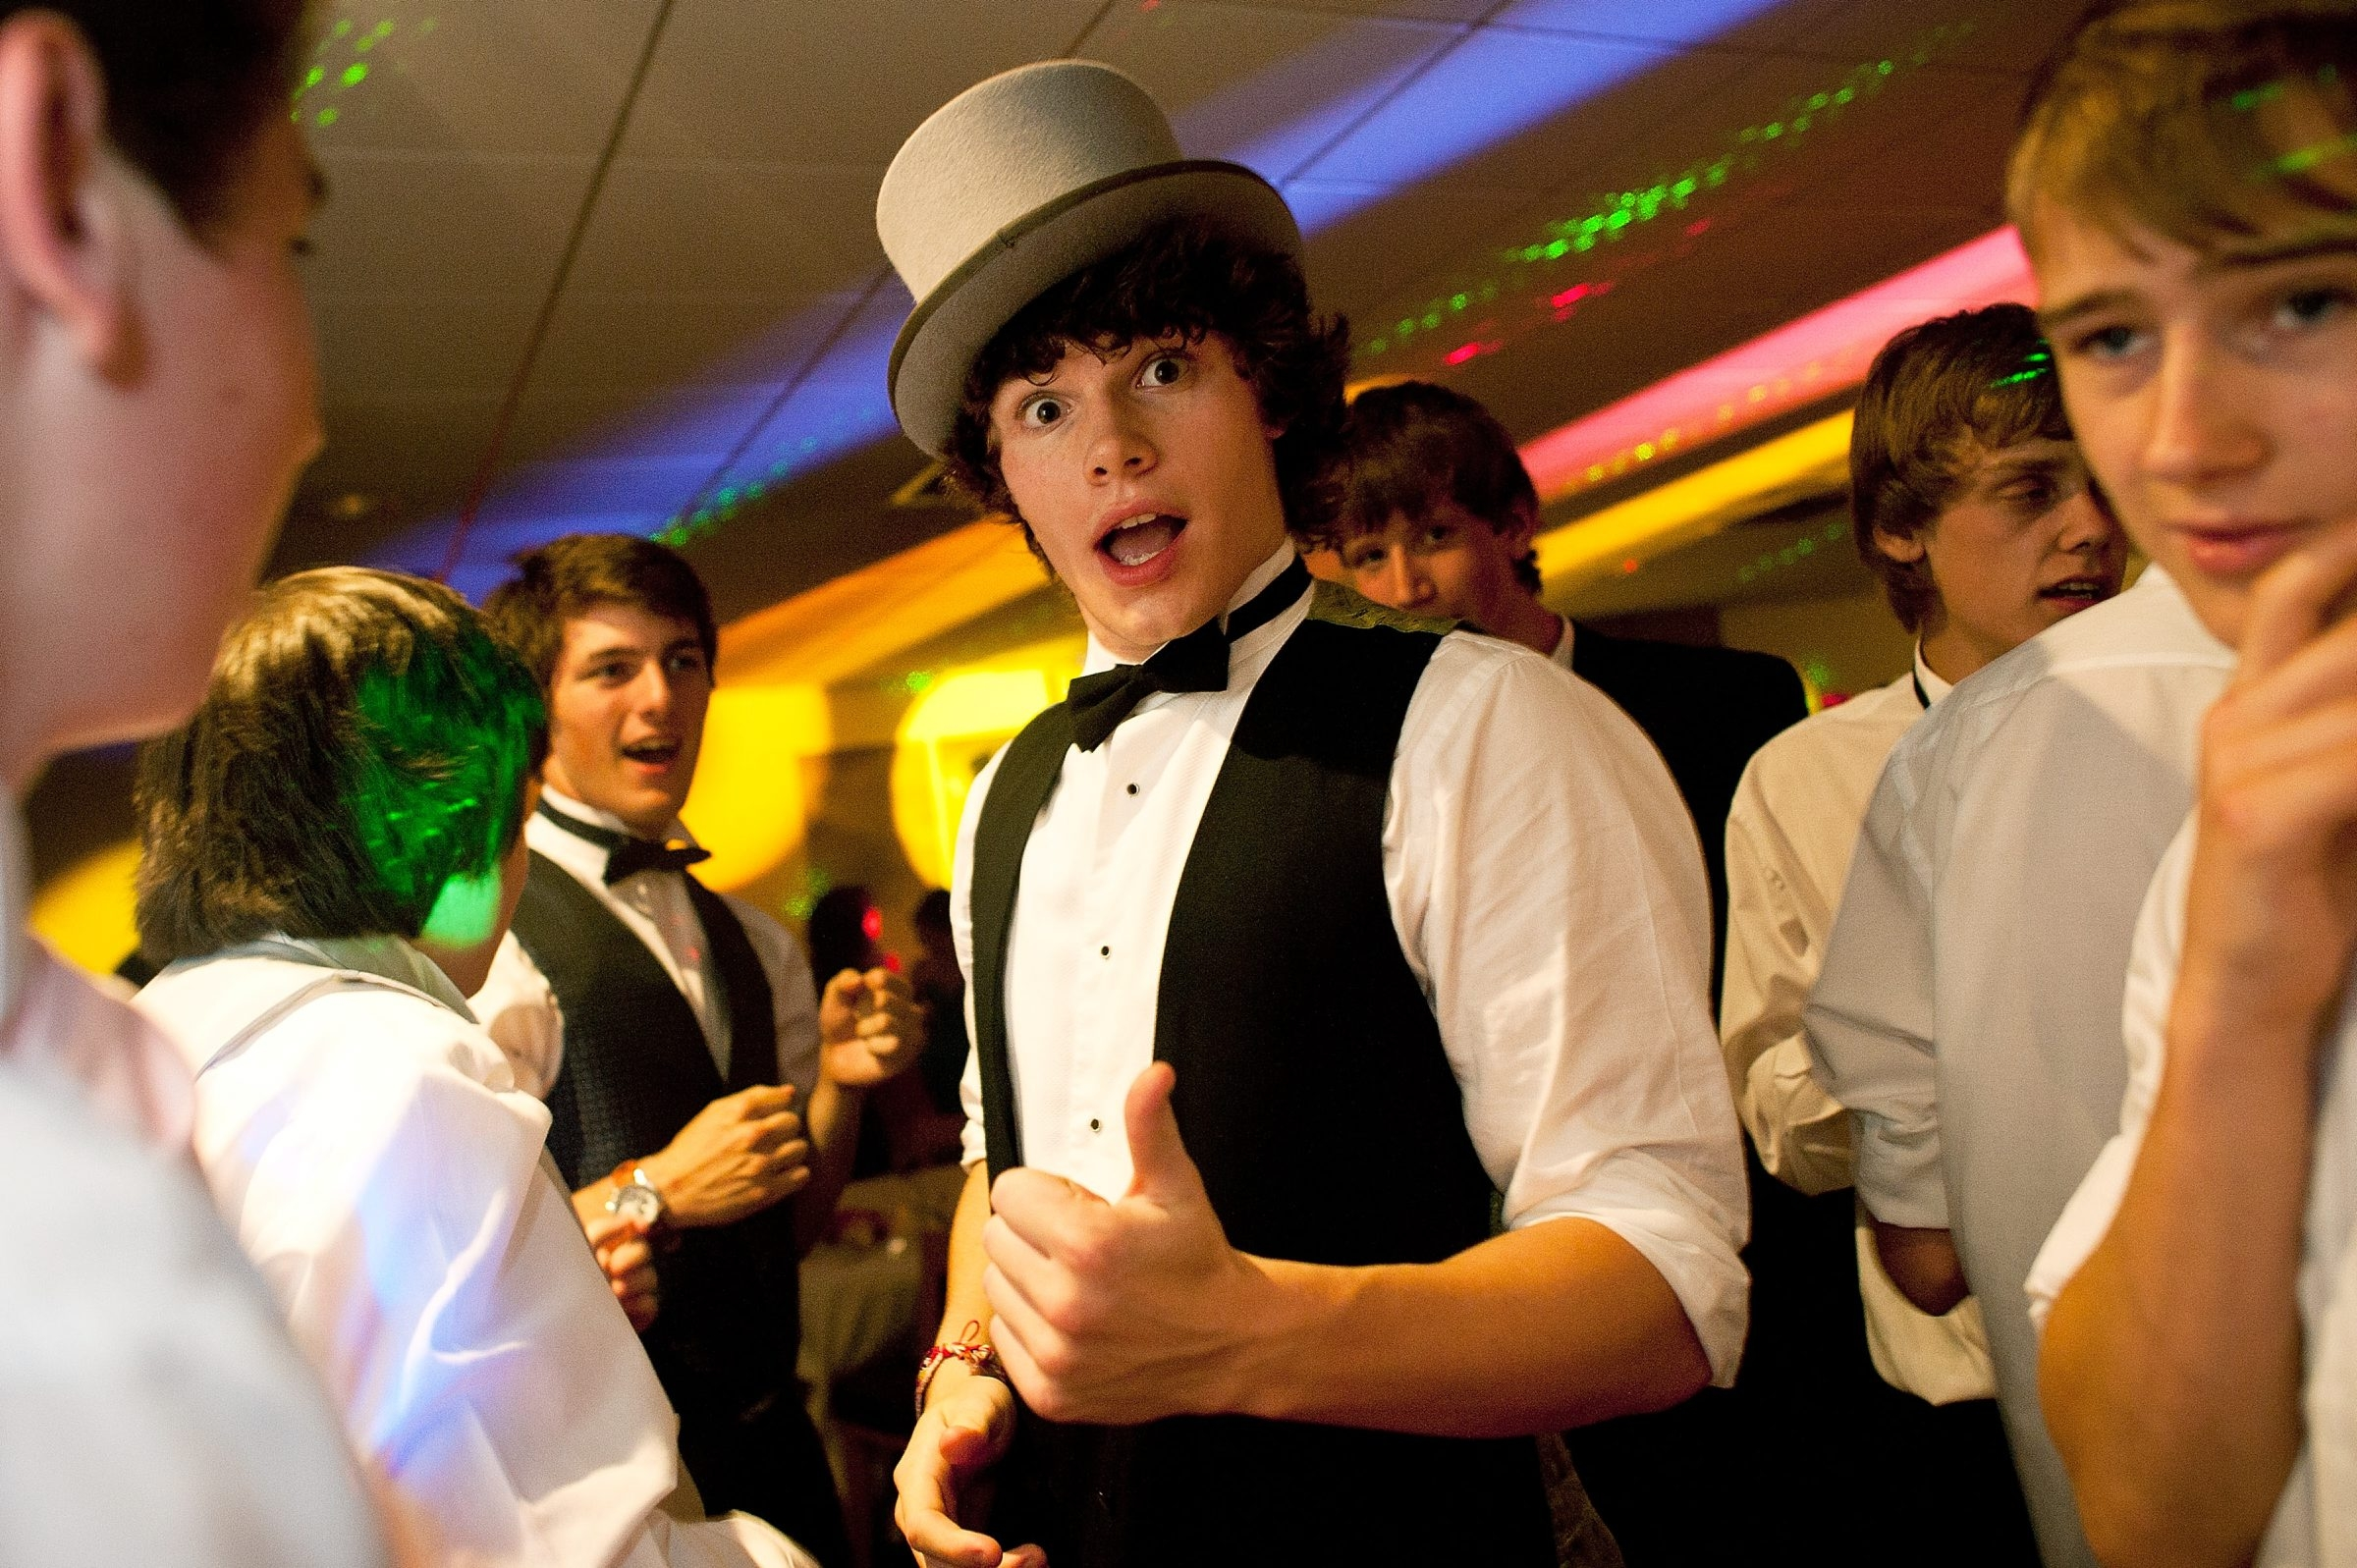 NEWCASTLE, UNITED KINGDOM – JULY 01:  Student James Pervis tries on a friends hat during the prom at St James' Park on July 1, 2011 in Newcastle, United Kingdom. After months of preparation more than 200 final year students aged 15 to 16 from Cramlington Learning Village attended a leaver's prom at St James Park, Newcastle. The prom marks the end of GCSE examinations and the completion of their high school studies.  (Photo by Bethany Clarke/Getty Images)